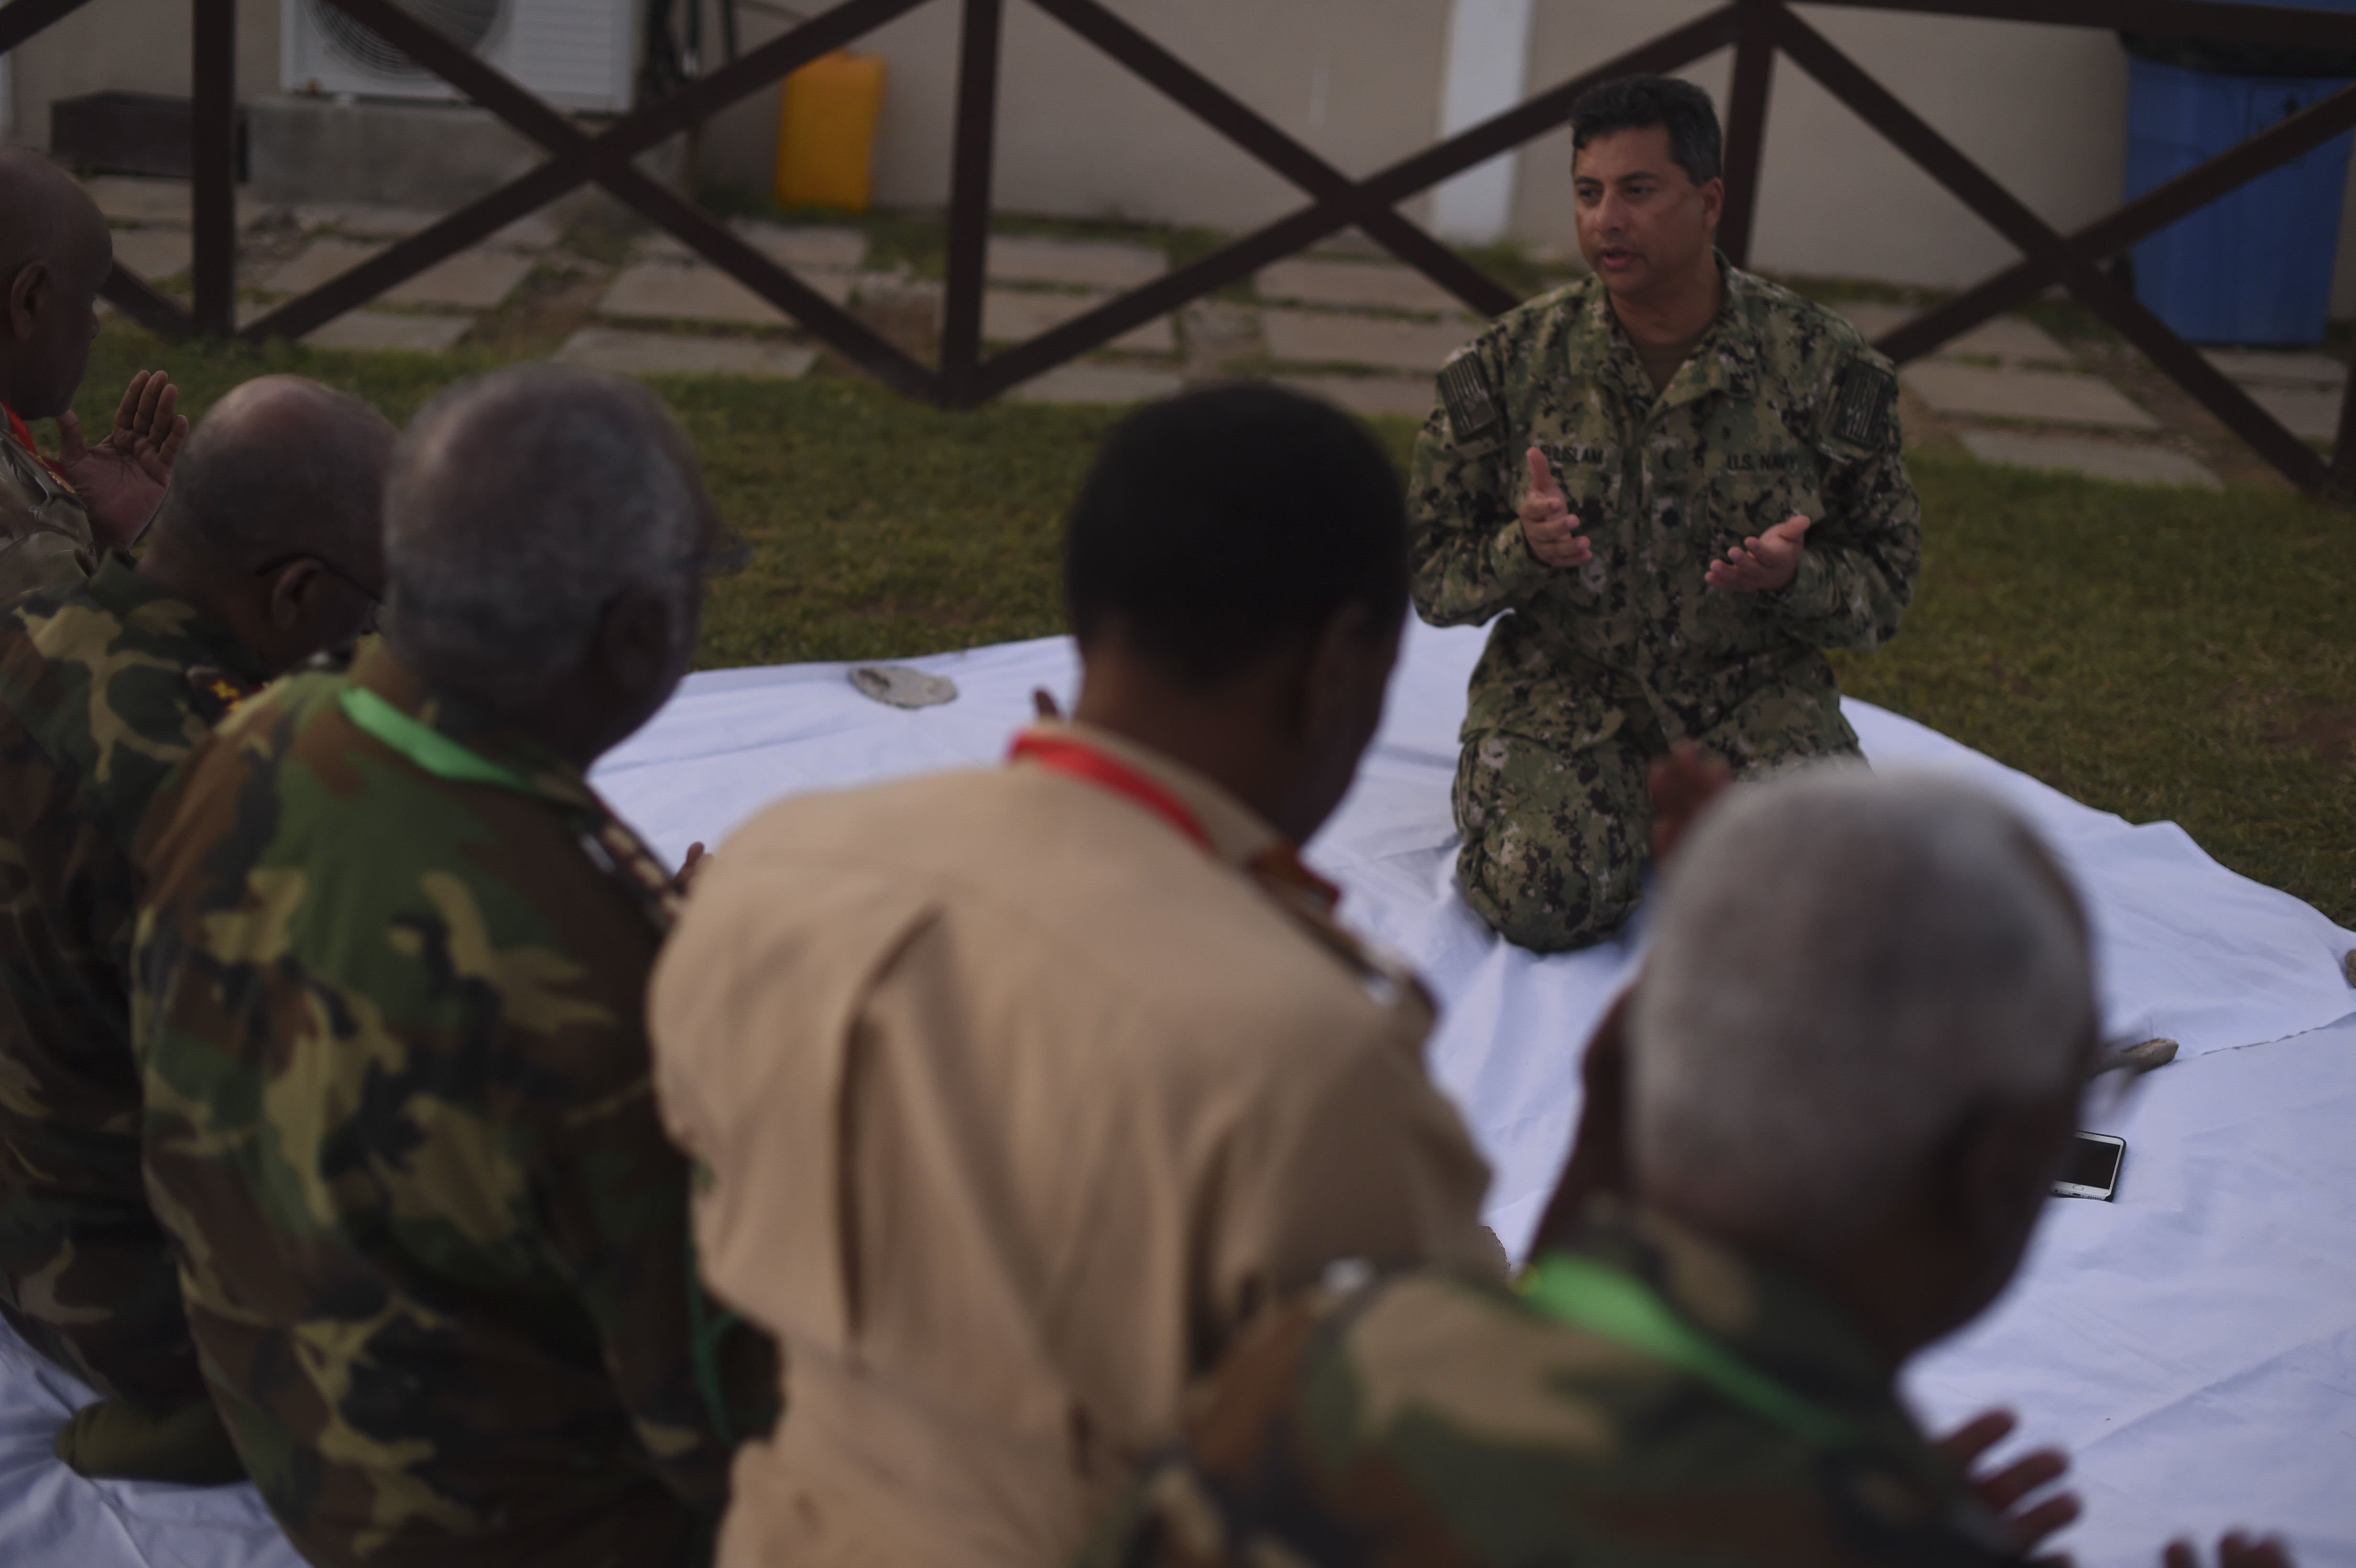 U.S. Navy Cmdr. Abuhena Saifulislam, U.S. Africa Command deputy command chaplain, speaks with members of the Somali National Army during a prayer before an Iftar at the Mogadishu International Airport, Mogadishu, Somalia, June 5, 2017. Saifulislam is the first Imam to be part of the AFRICOM Chaplain Corps and led the prayer that preceded the Iftar, which is the nightly meal that ends the day's fast during Ramadan. (U.S. Air Force Photo by Staff Sgt. Eboni Prince)